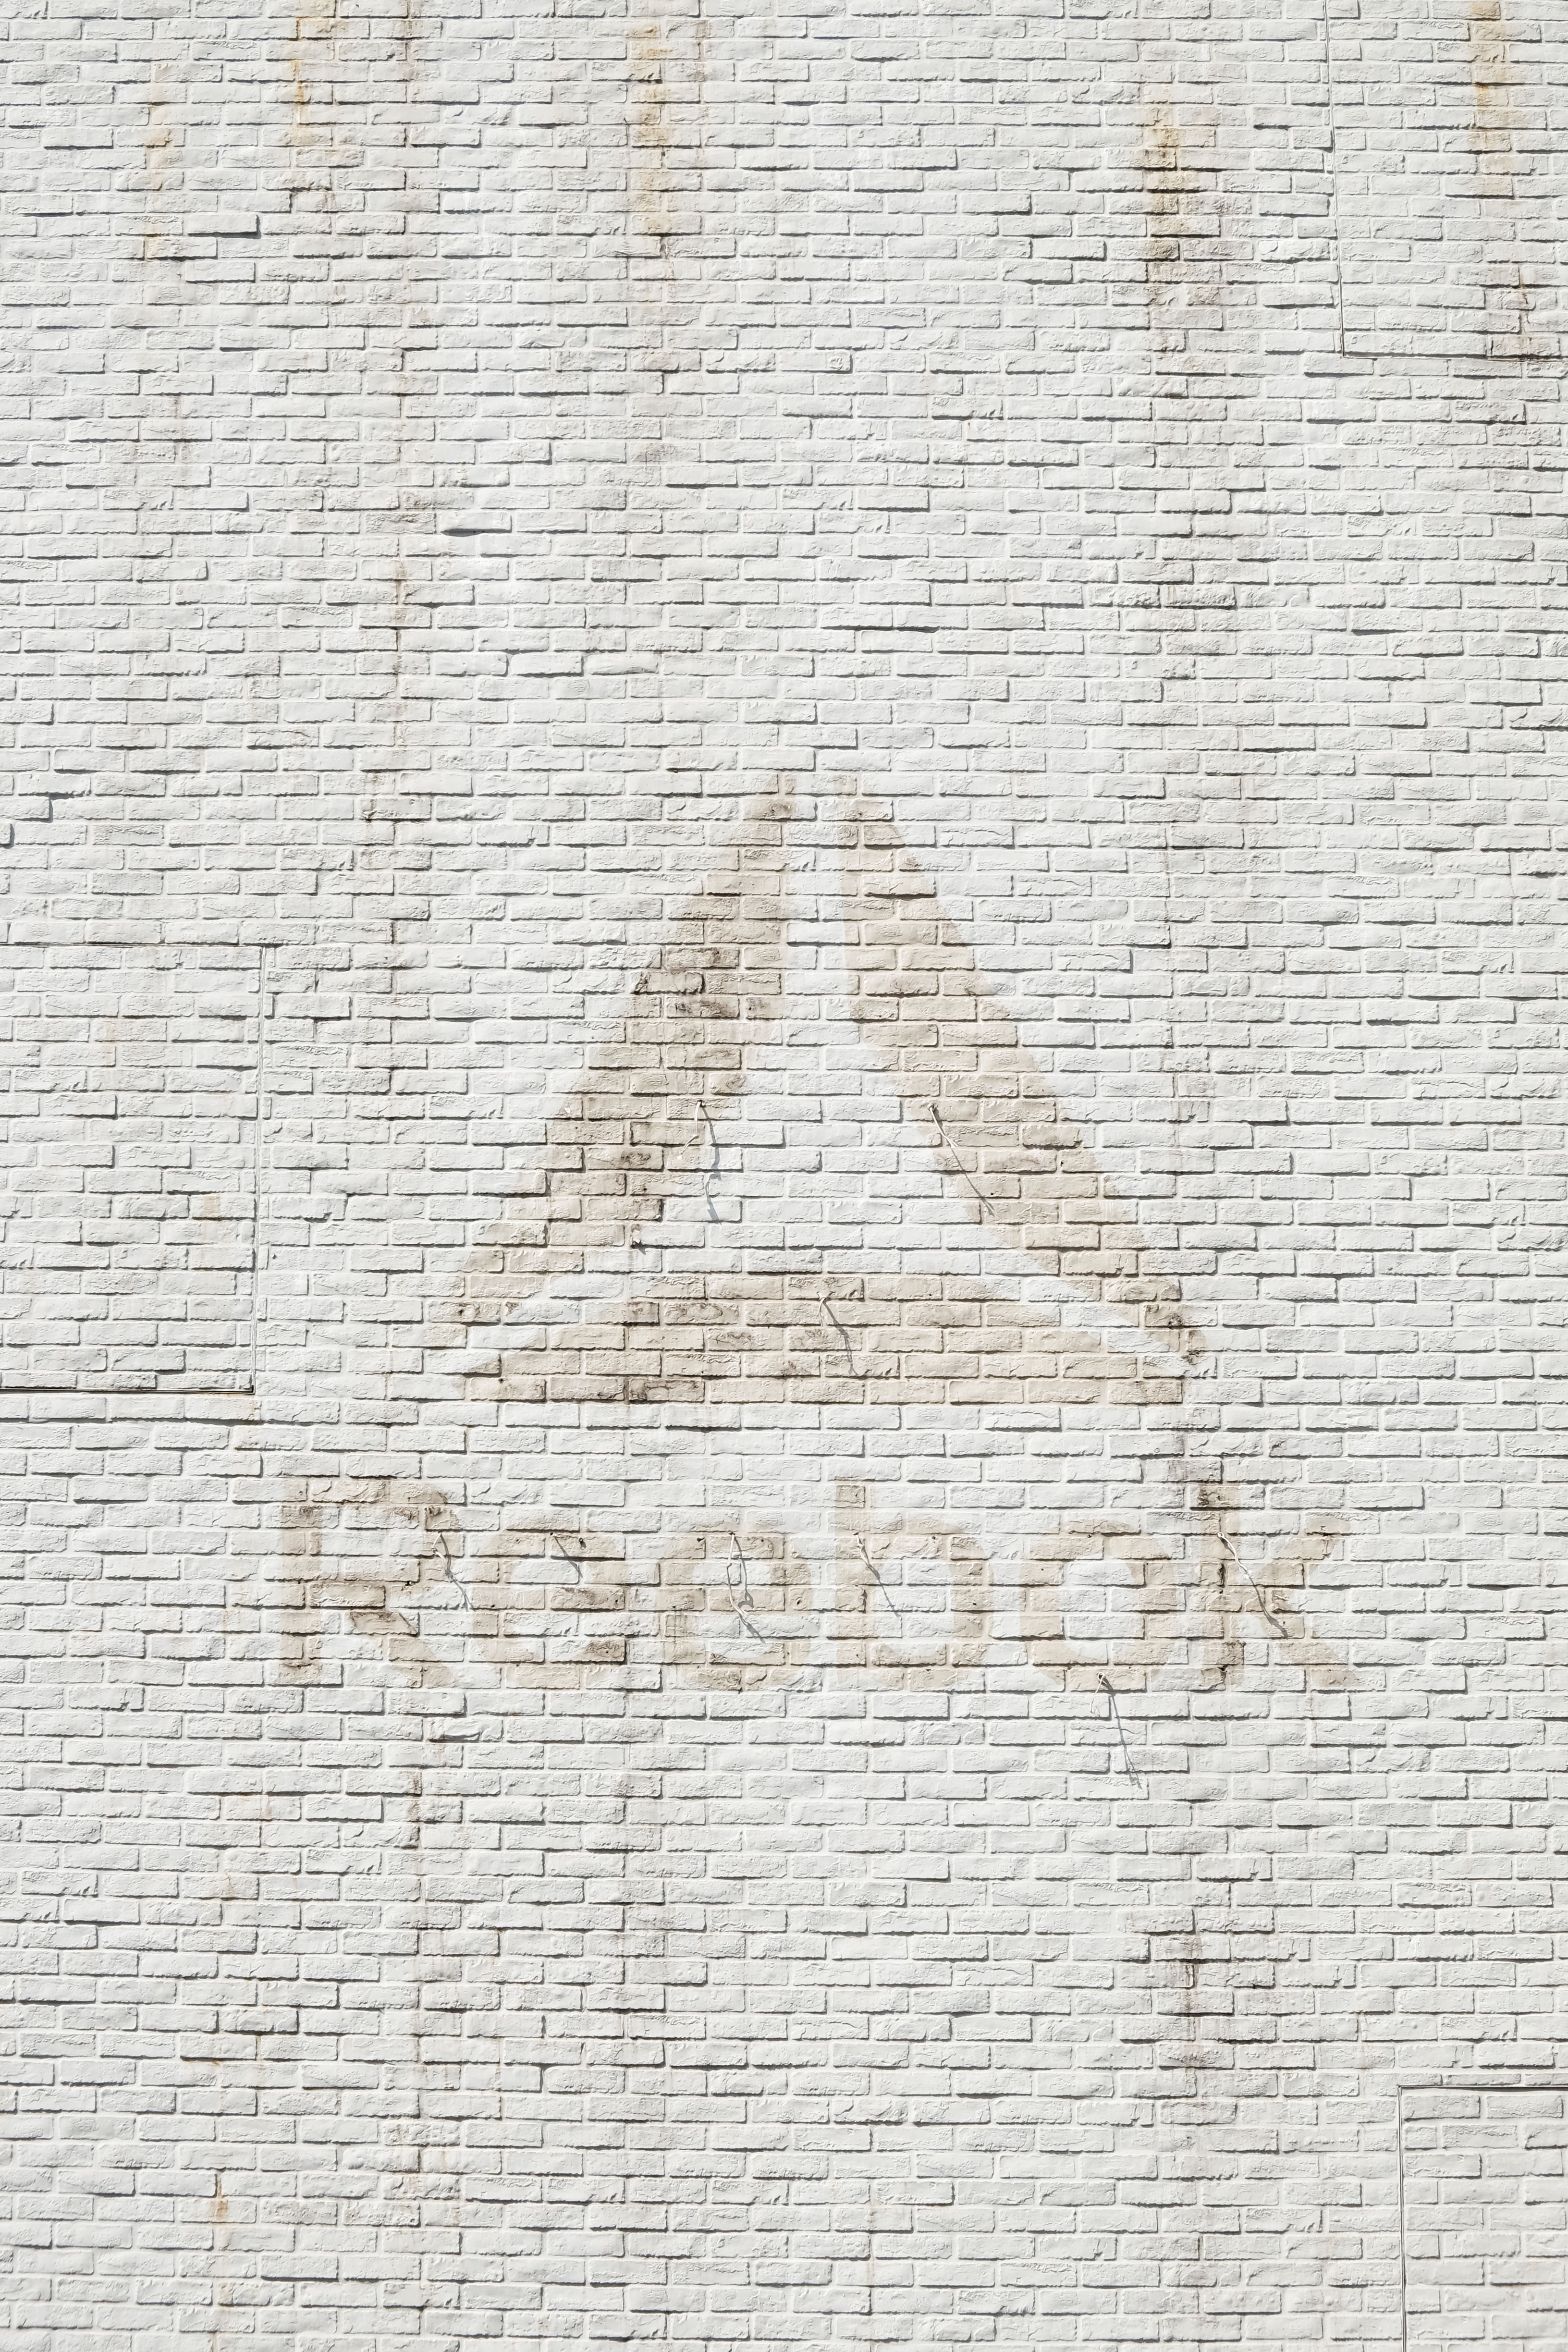 close-up photo of Reebok logo on wall